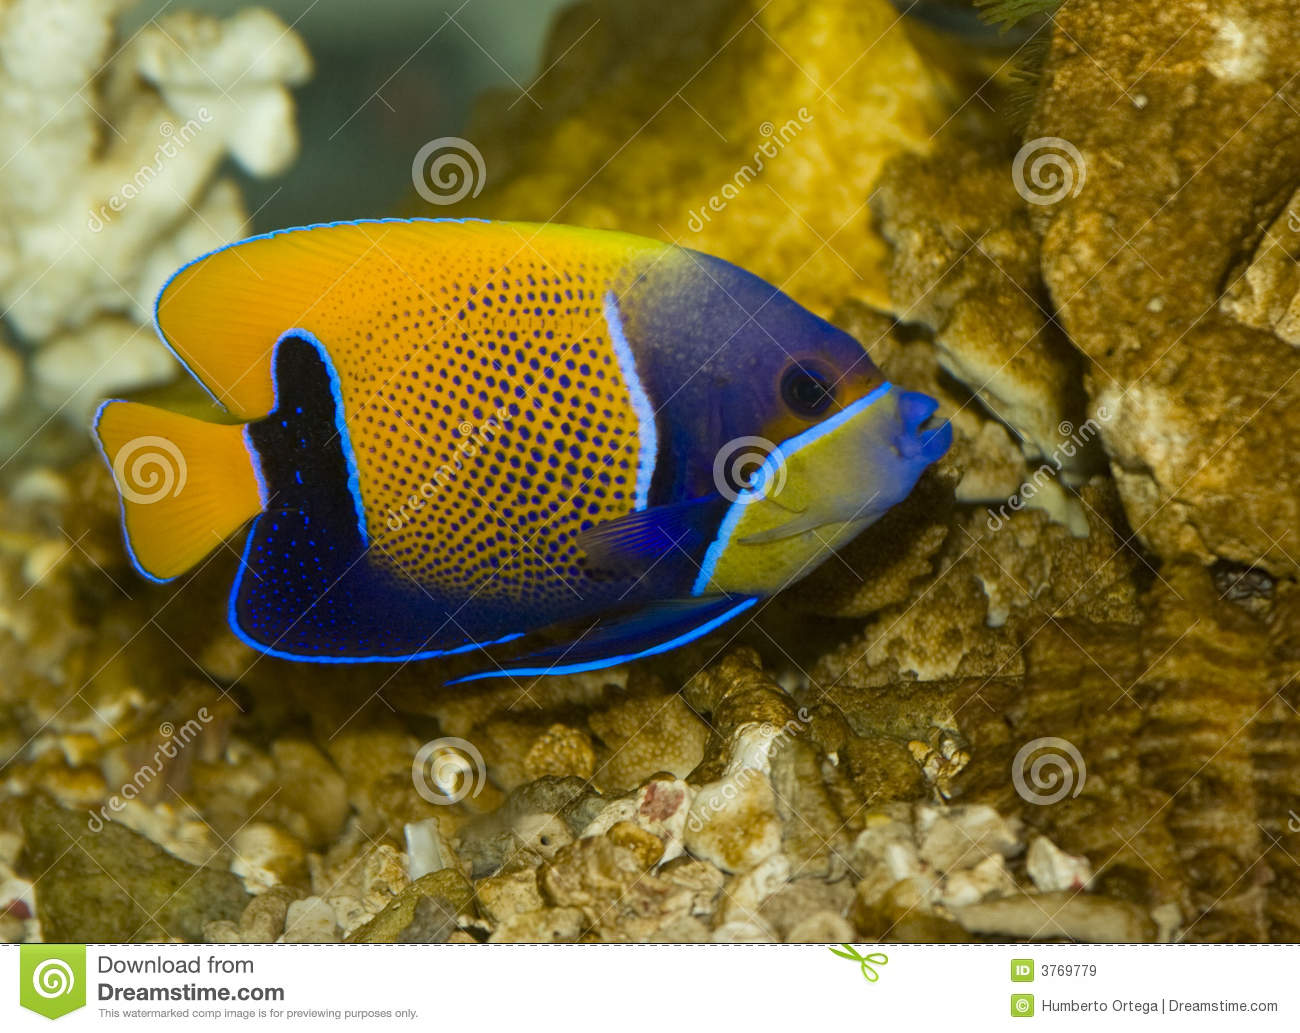 Poissons tropicaux image stock image du aquarium for Poisson tropicaux